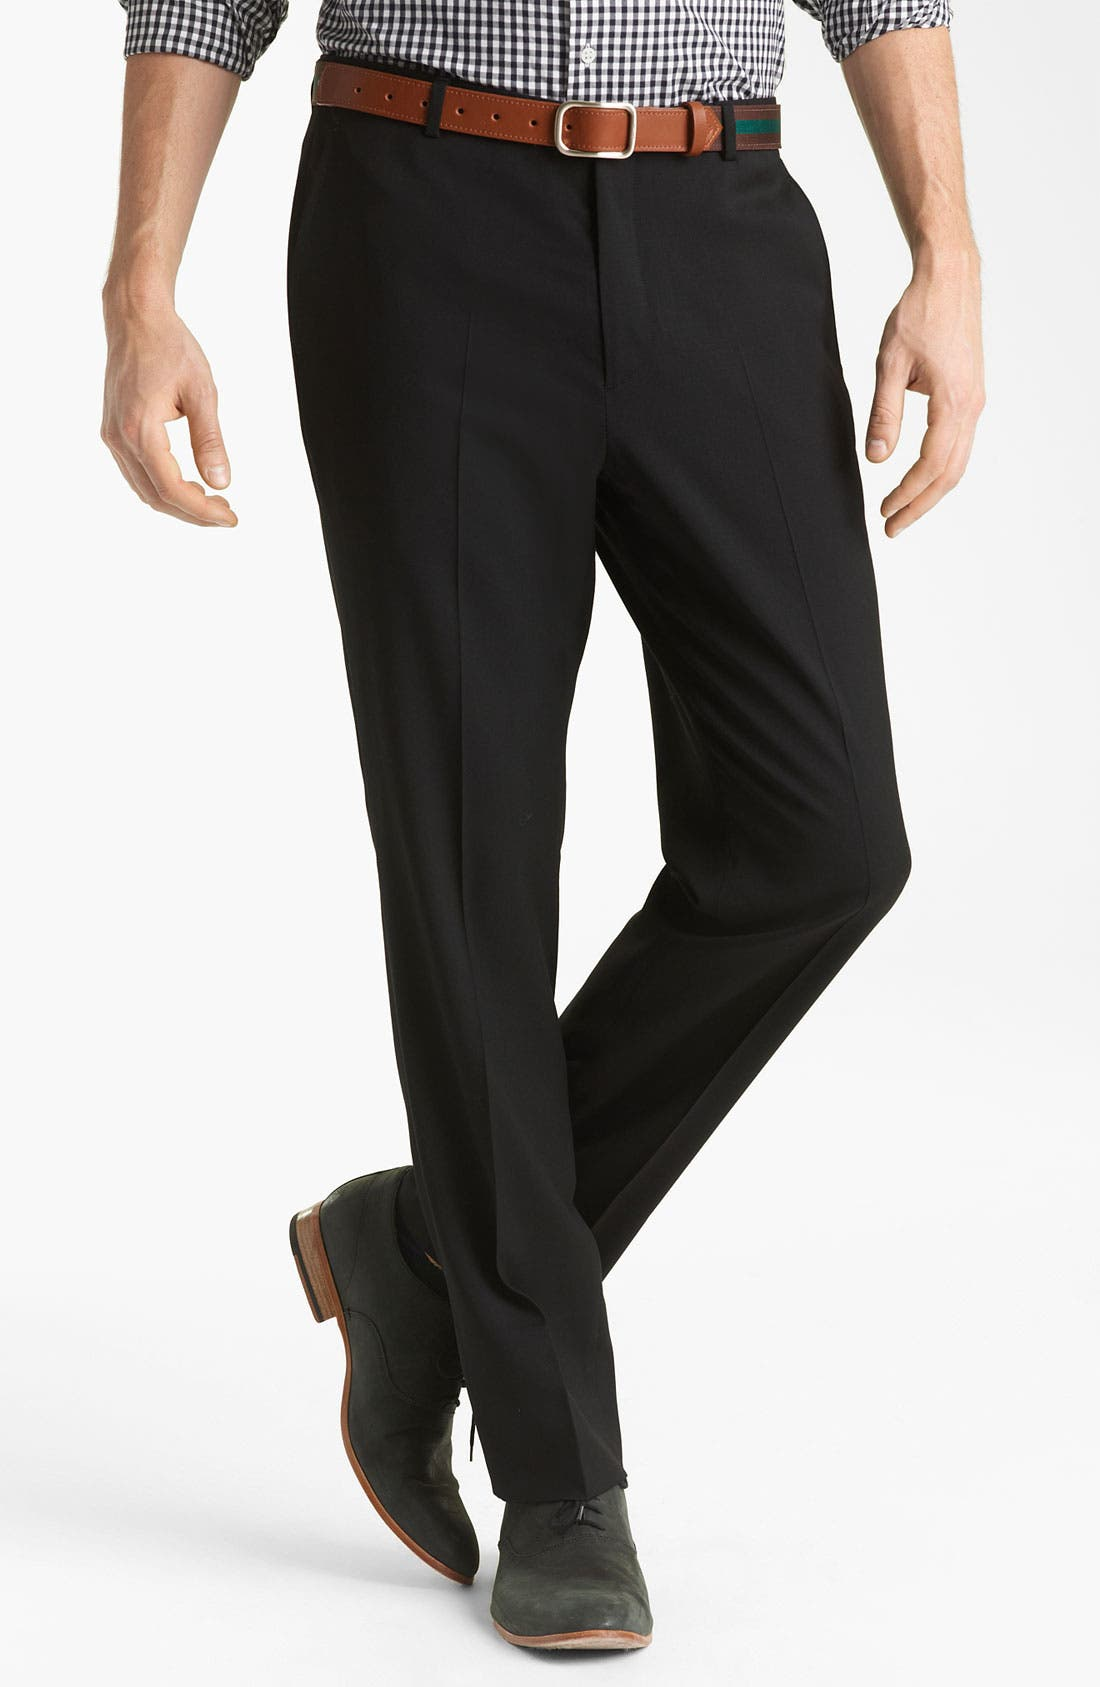 Alternate Image 1 Selected - Shipley & Halmos 'Grand Classic' Wool Trousers